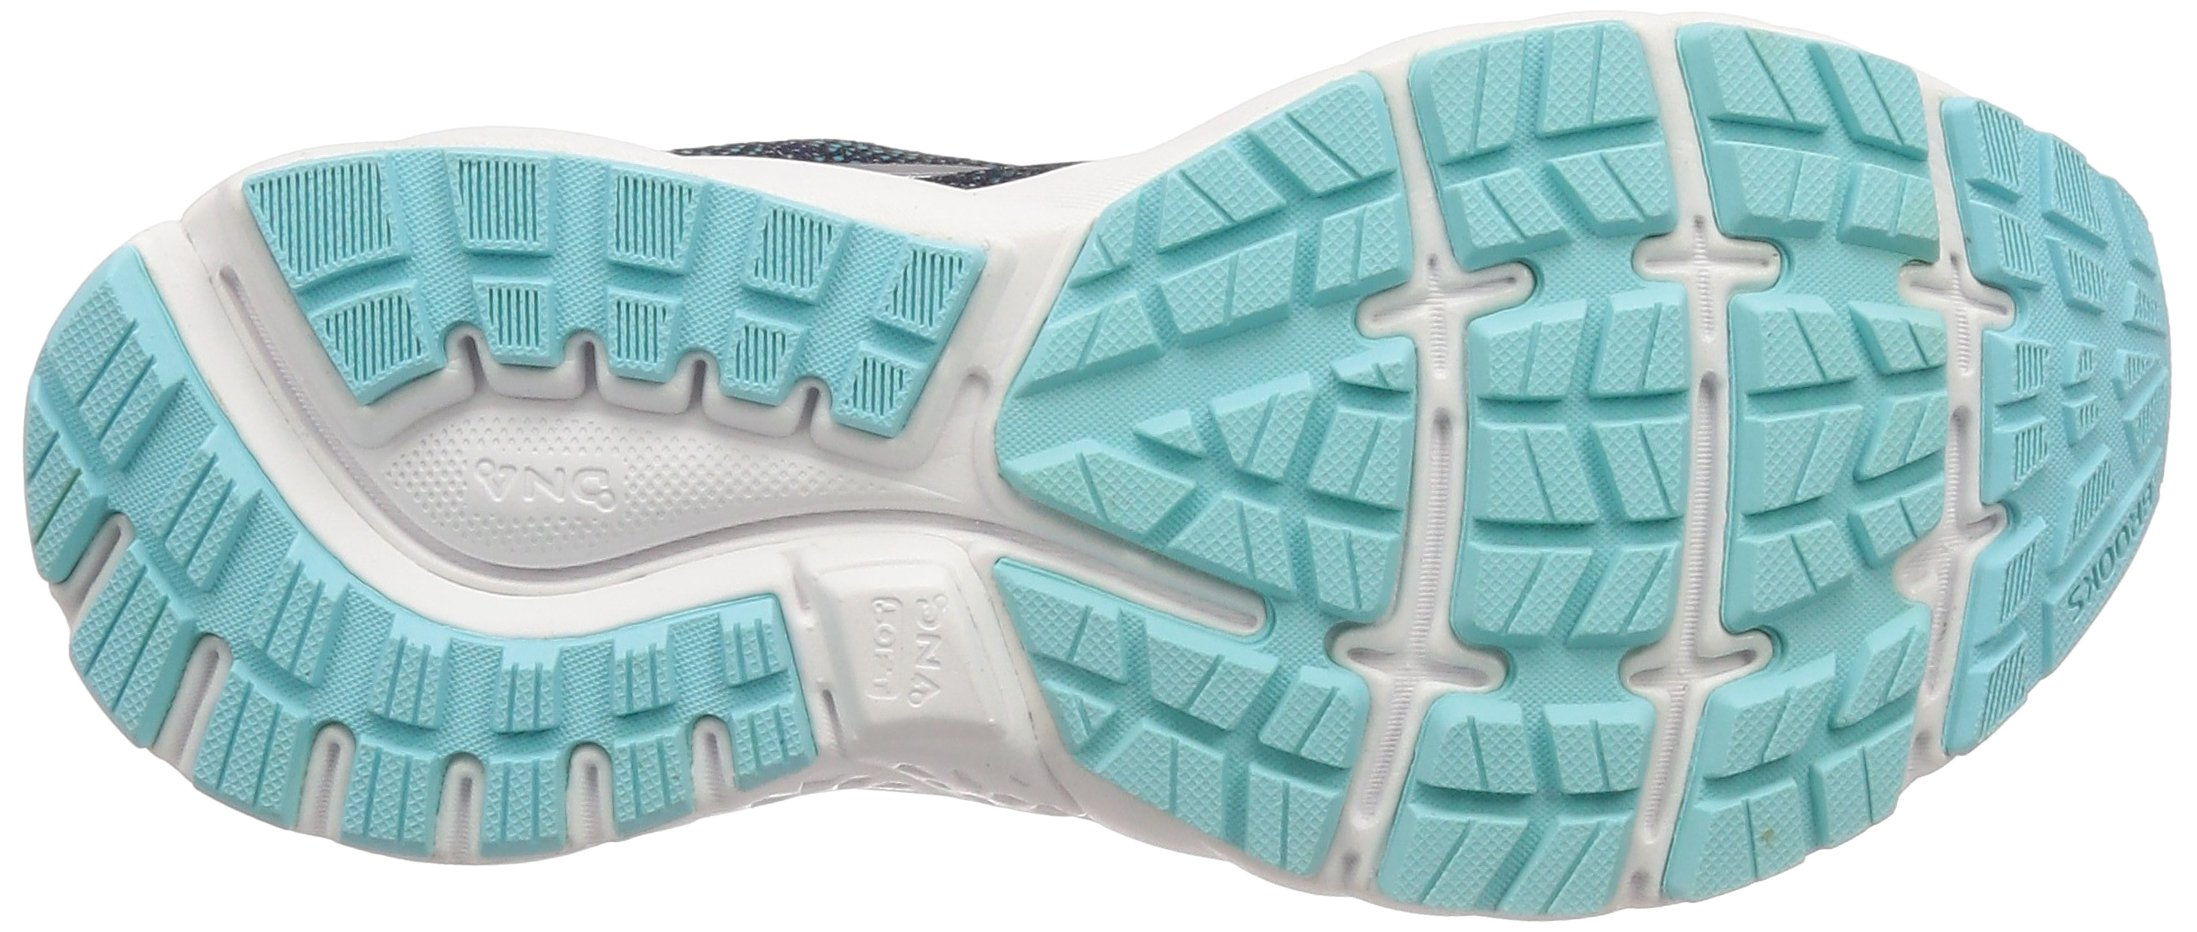 Brooks Womens Ghost 11 Running Shoe - Navy/Grey/Blue - D - 5.5 by Brooks (Image #3)